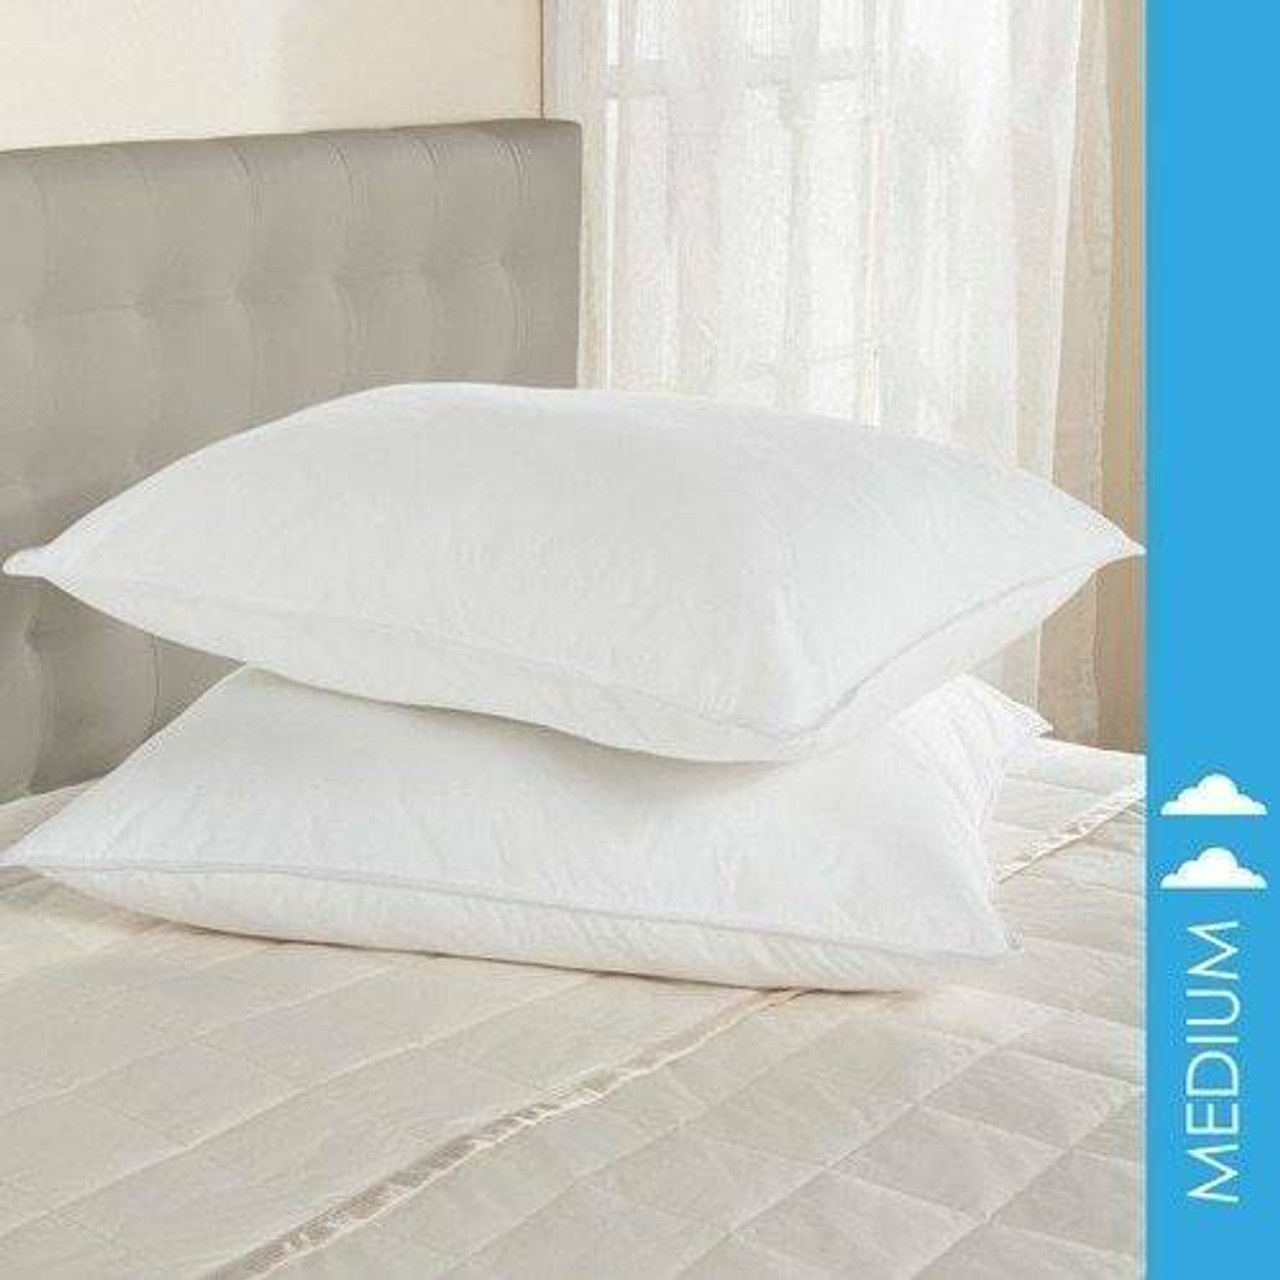 DownLite Bedding DOWNLITE Hotel and Resort 50-50 Down and Feather Blend Pillow